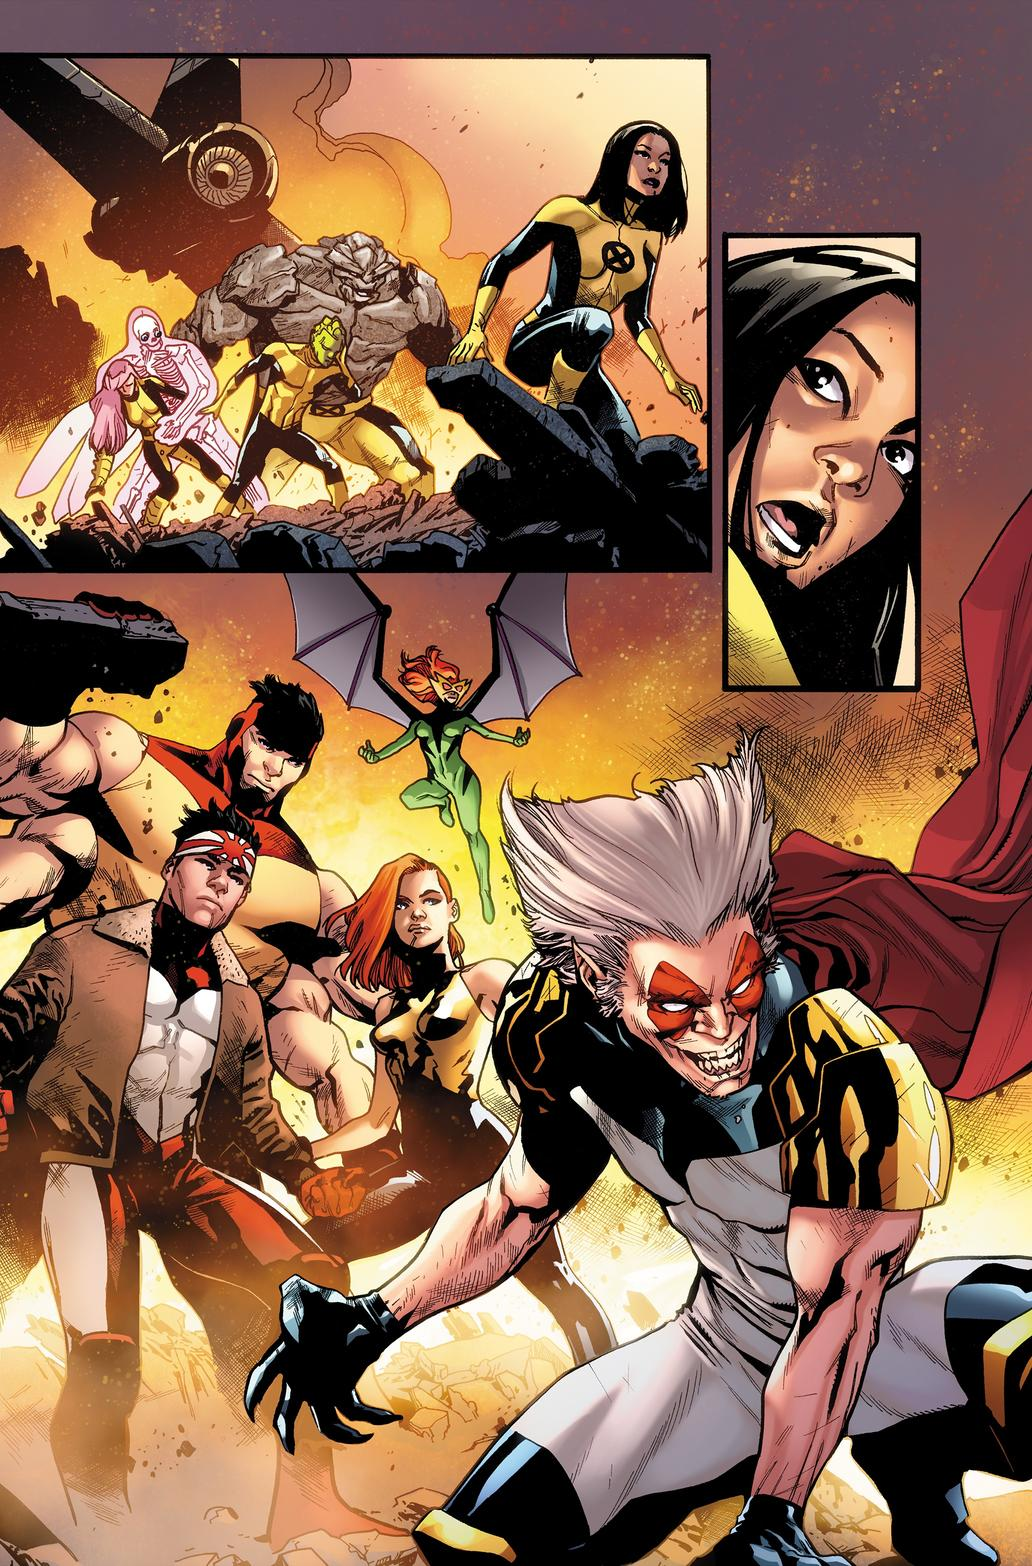 UNCANNY X-MEN #1 by Mahmud Asrar and Rachelle Rosenberg